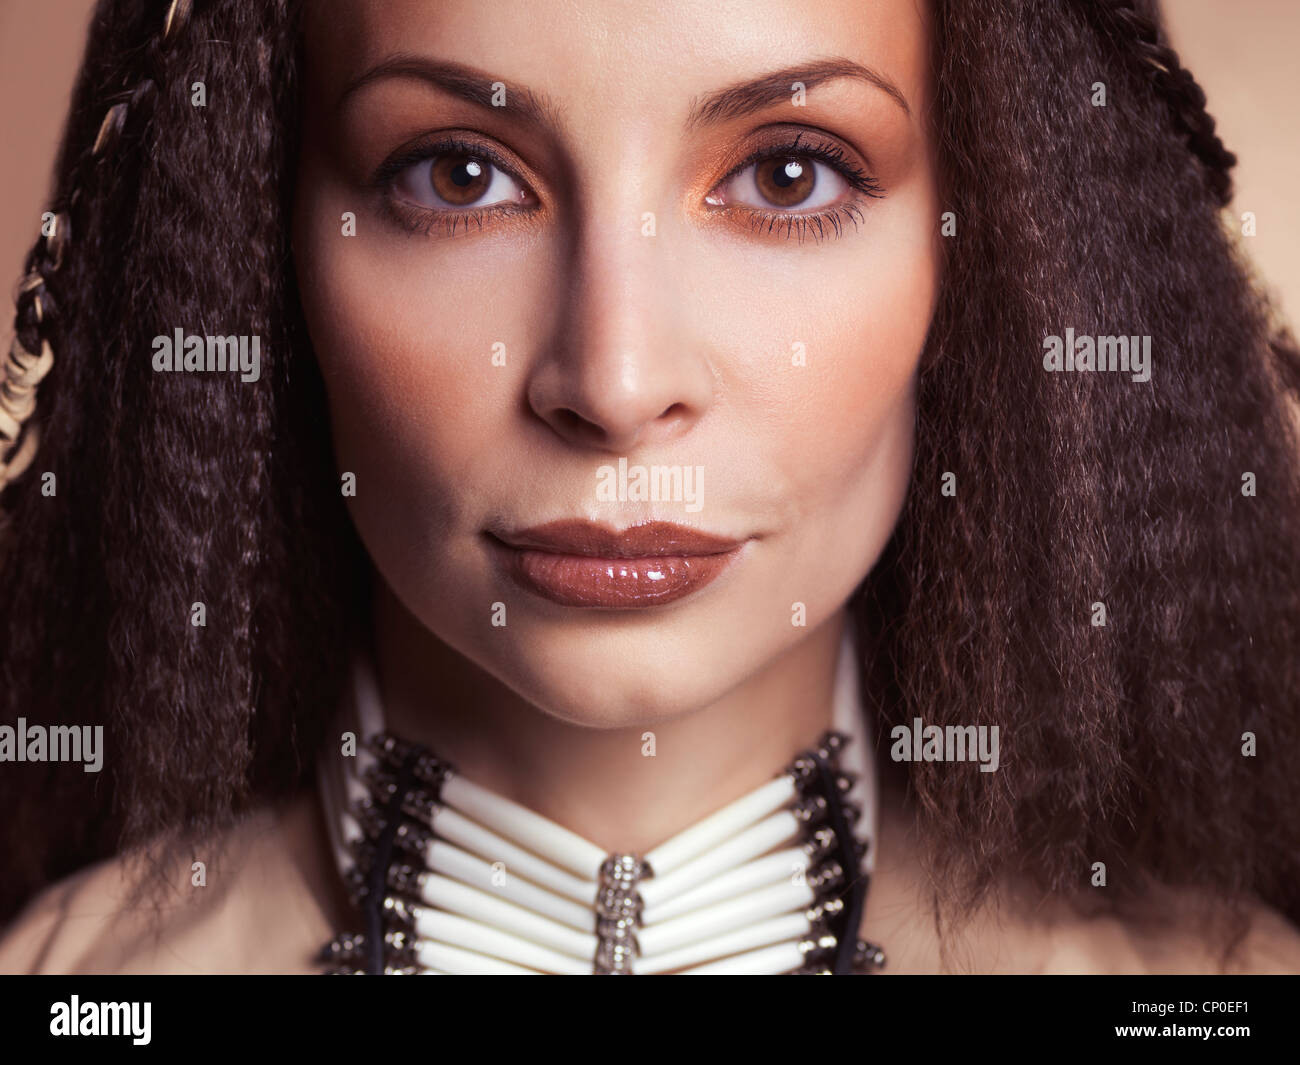 Closeup beauty face portrait of a beautiful woman wearing native accessories - Stock Image